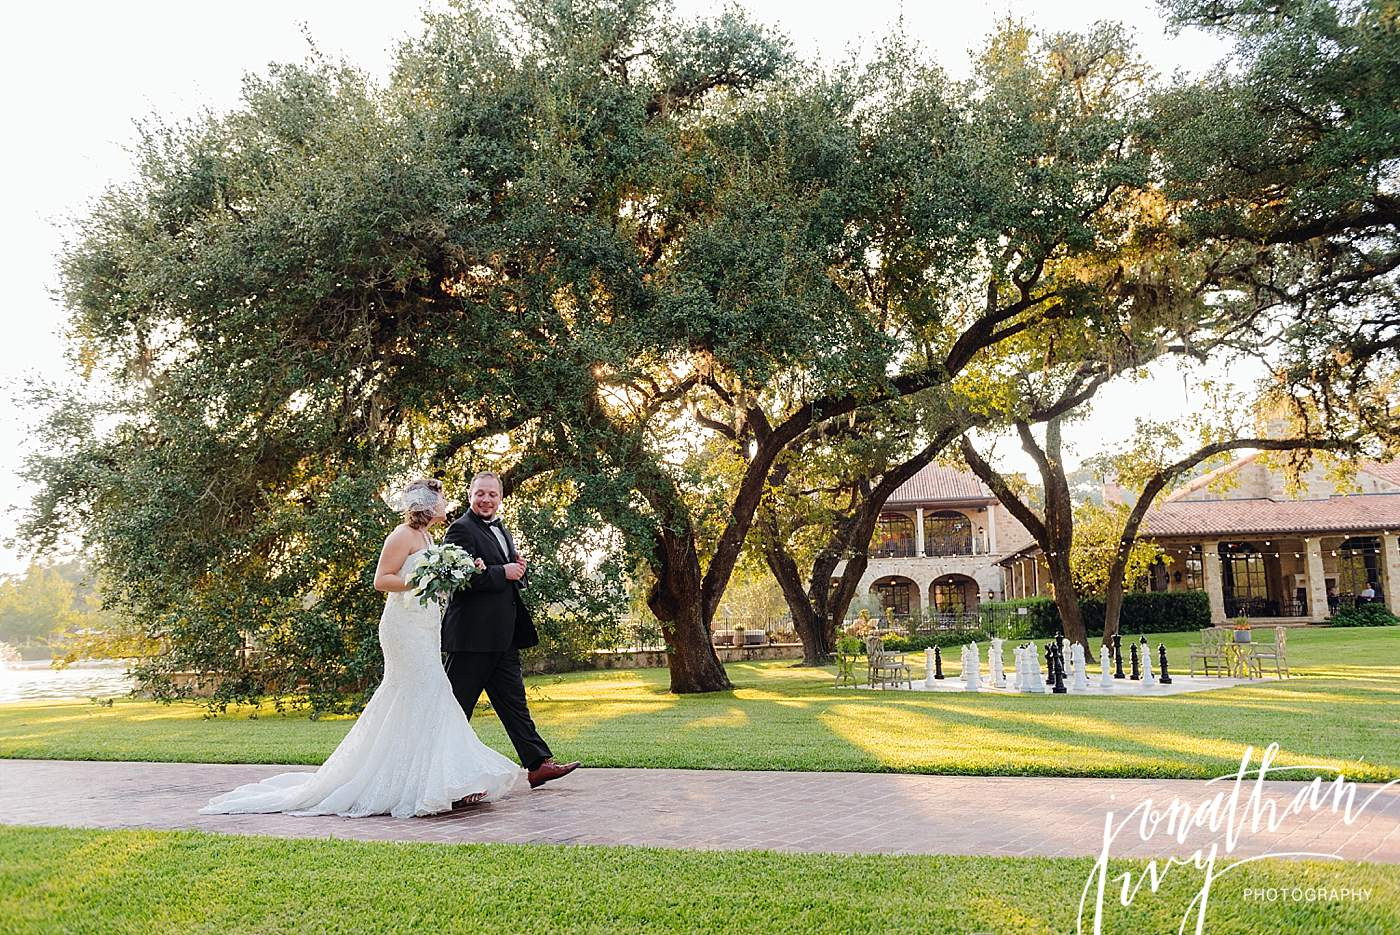 Outdoor Wedding At Houston Oaks Country Club: Houston Oaks Country Club Wedding